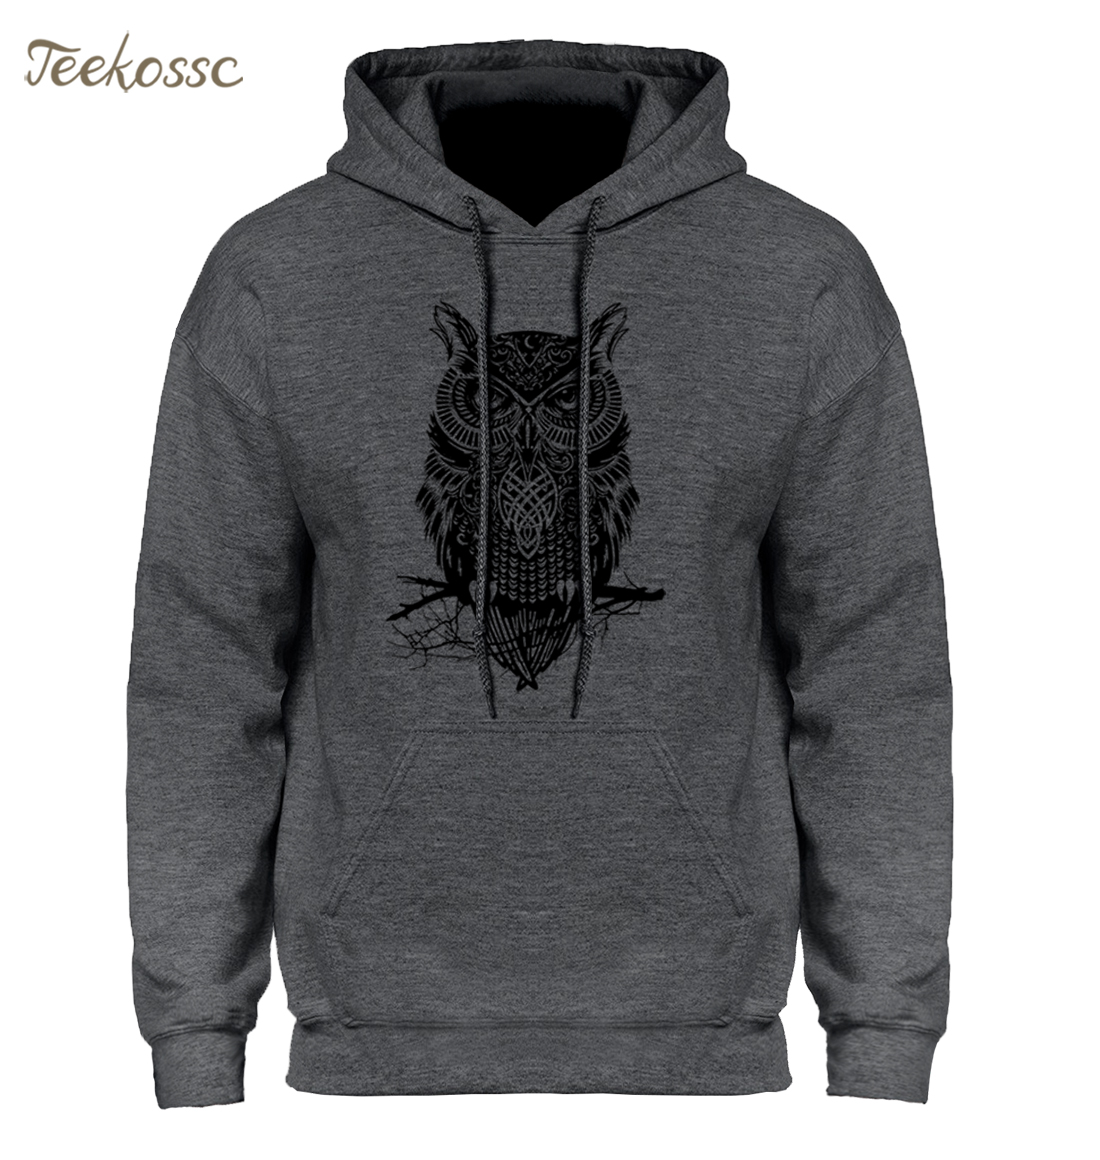 Animal Owl Hoodie Hoodies Sweatshirt Men 2018 New Fashion Spring Autumn Casual Hooded Hoody Men's Sportswear Brand Clothing Male